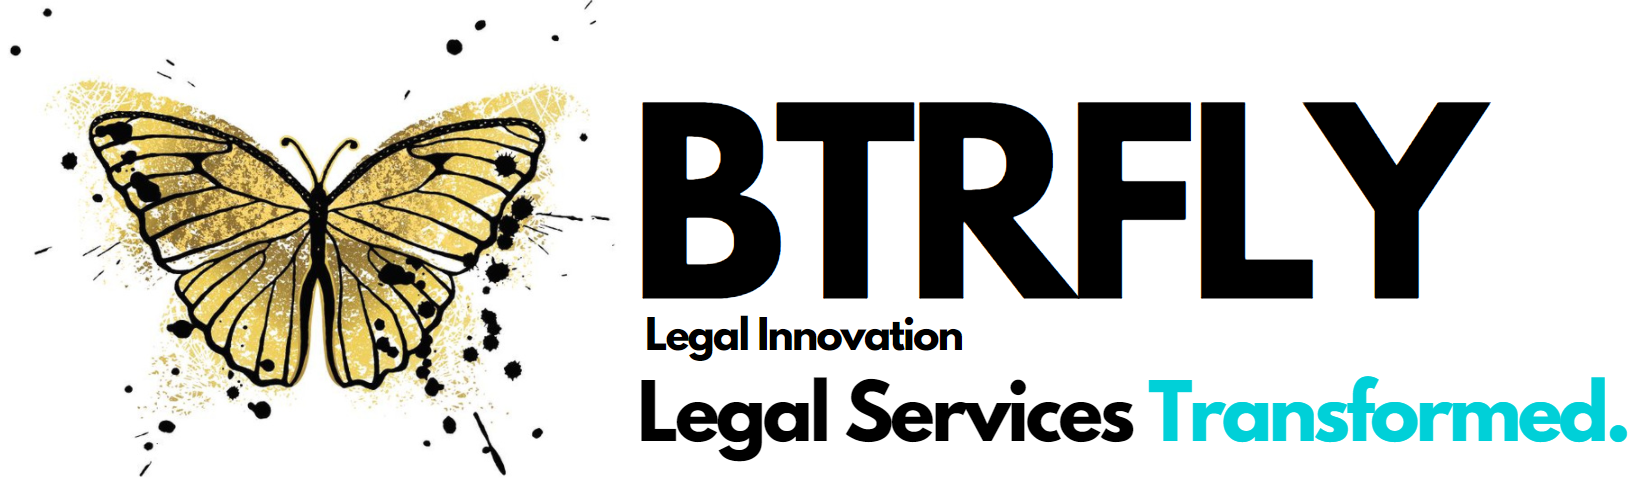 BTRFLY Legal Innovation